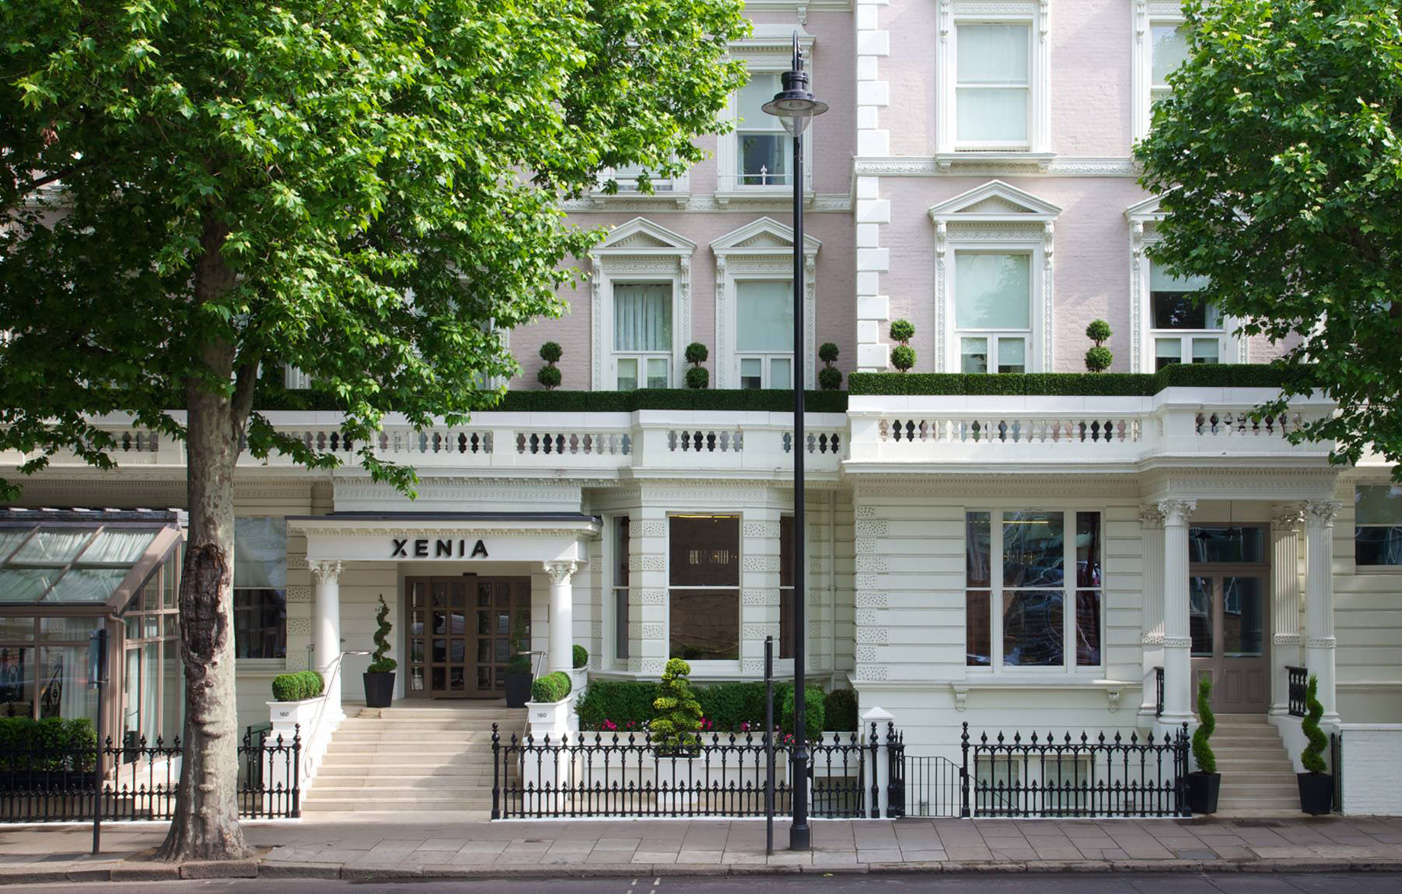 London Boutique Hotel Hotel Xenia Luxury London Hotels